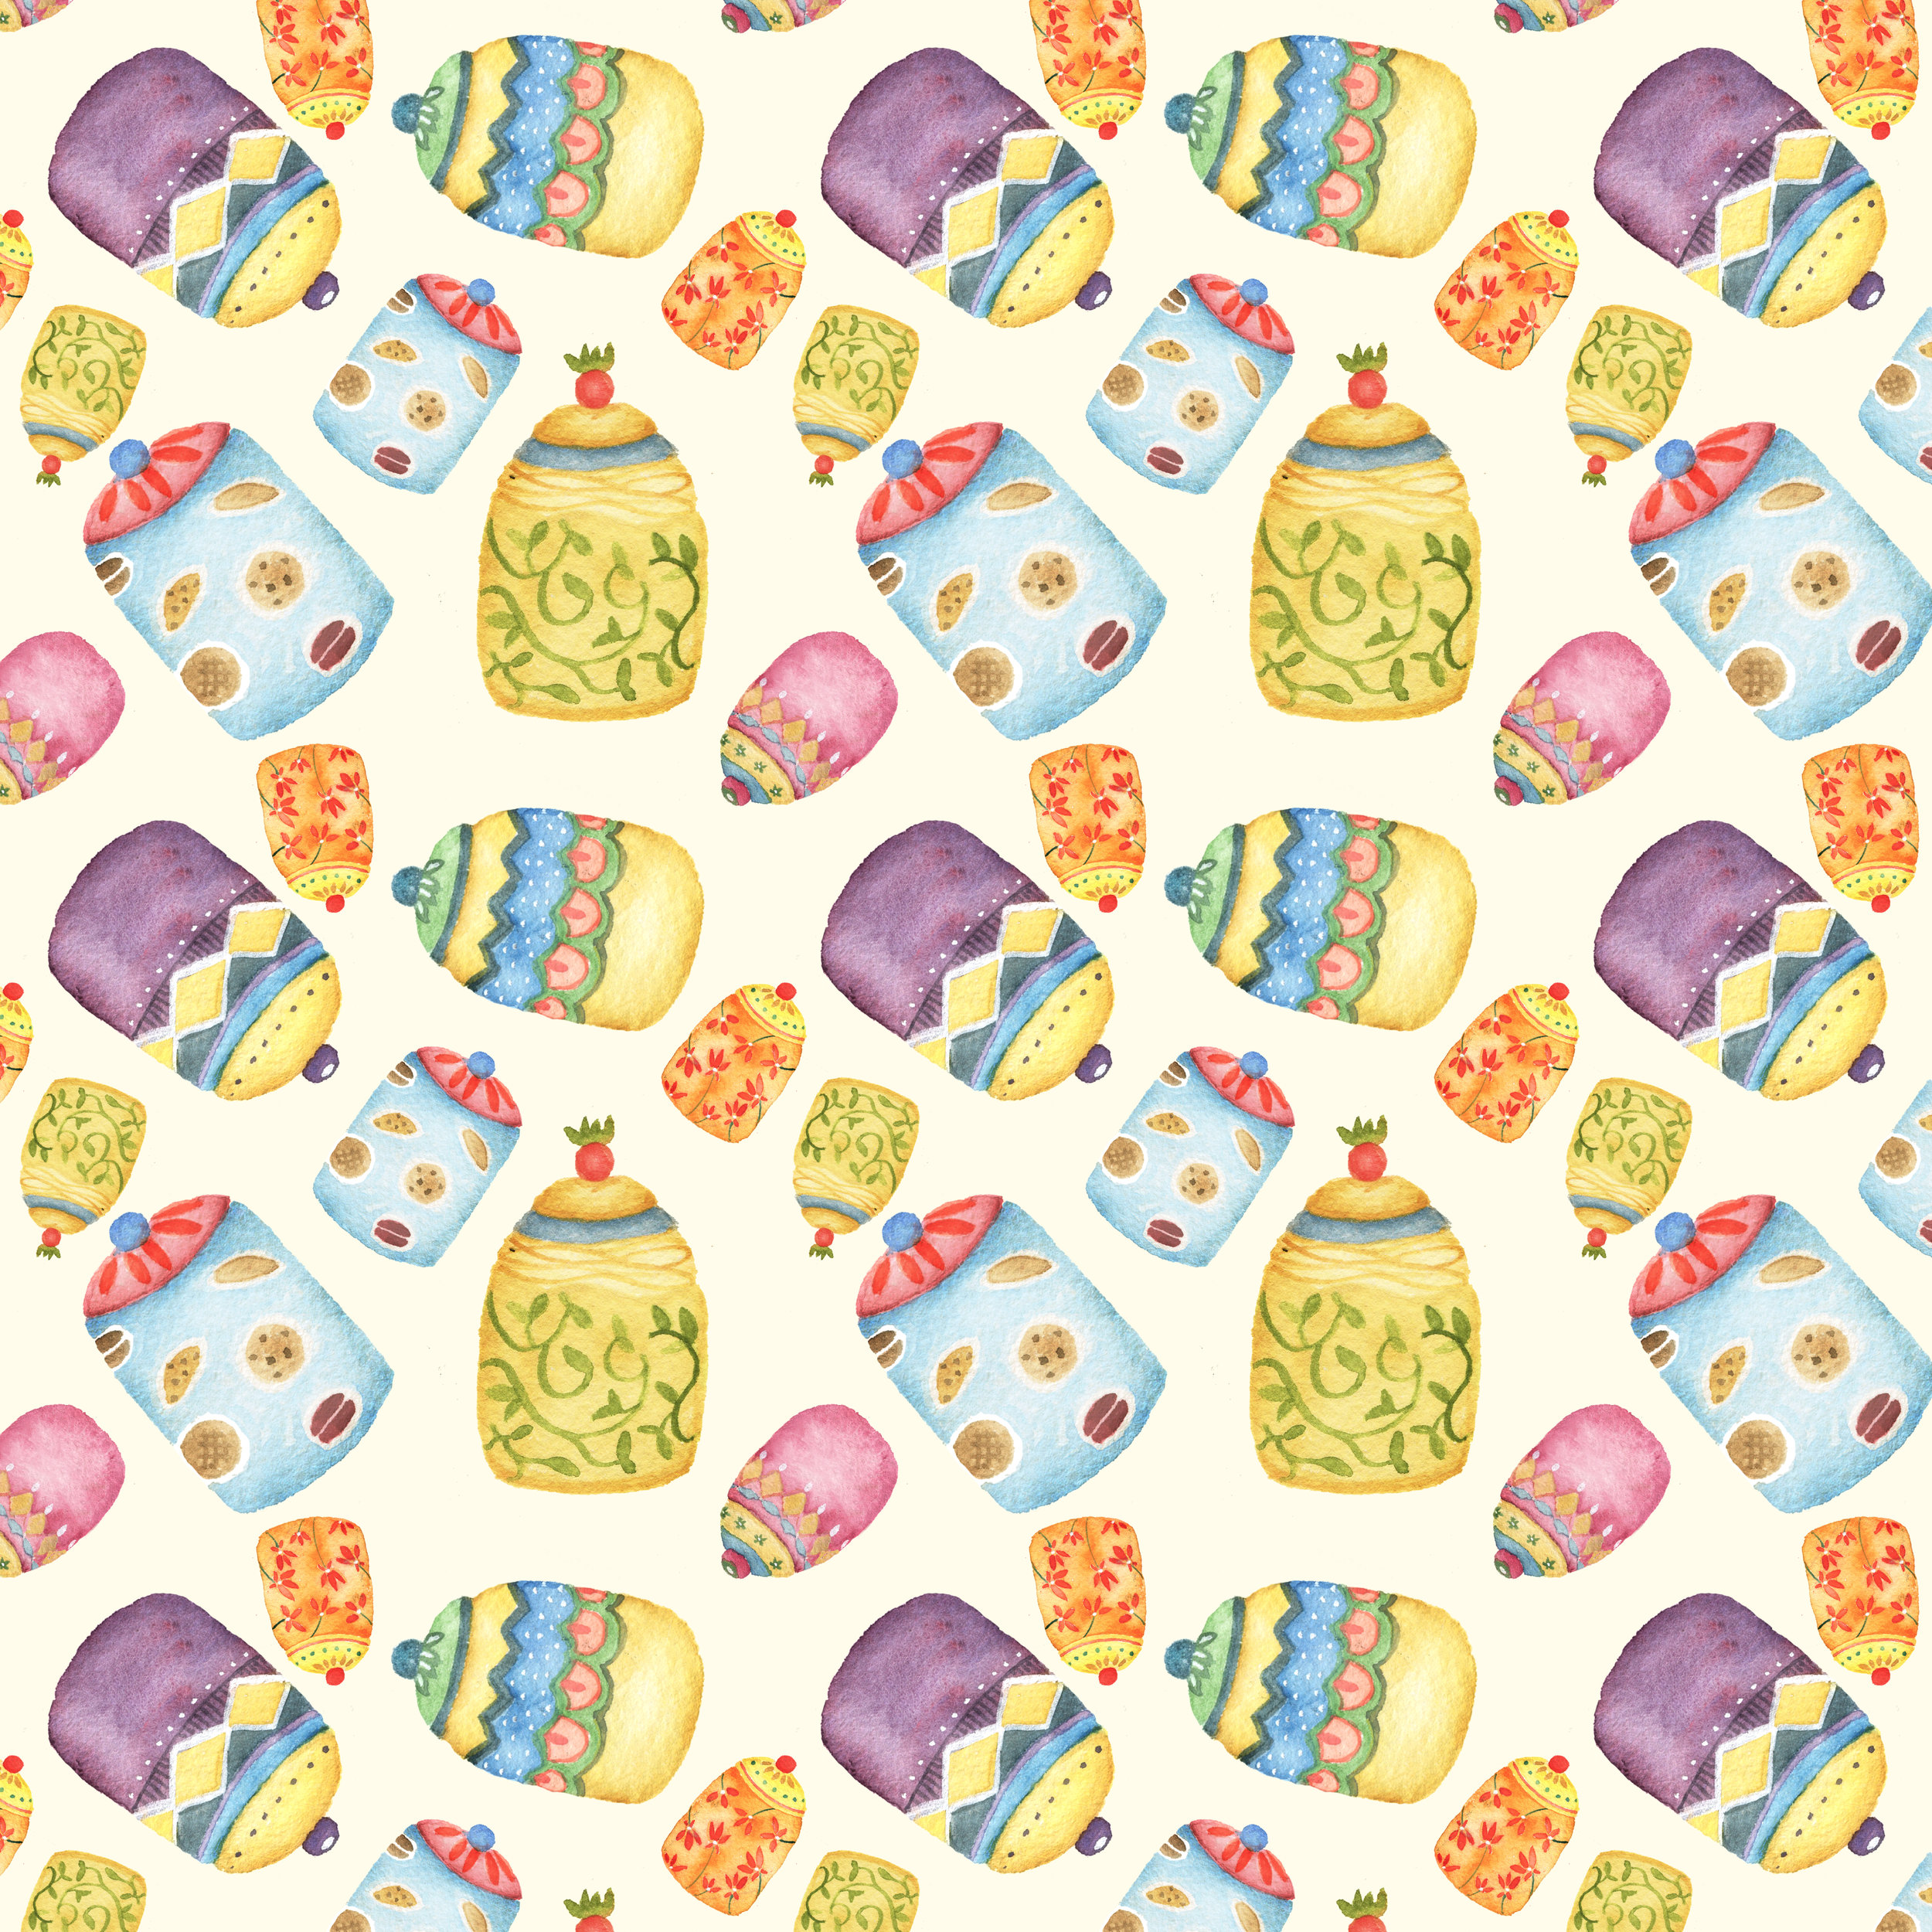 Elizatodd_cookie-jar-pattern.jpg